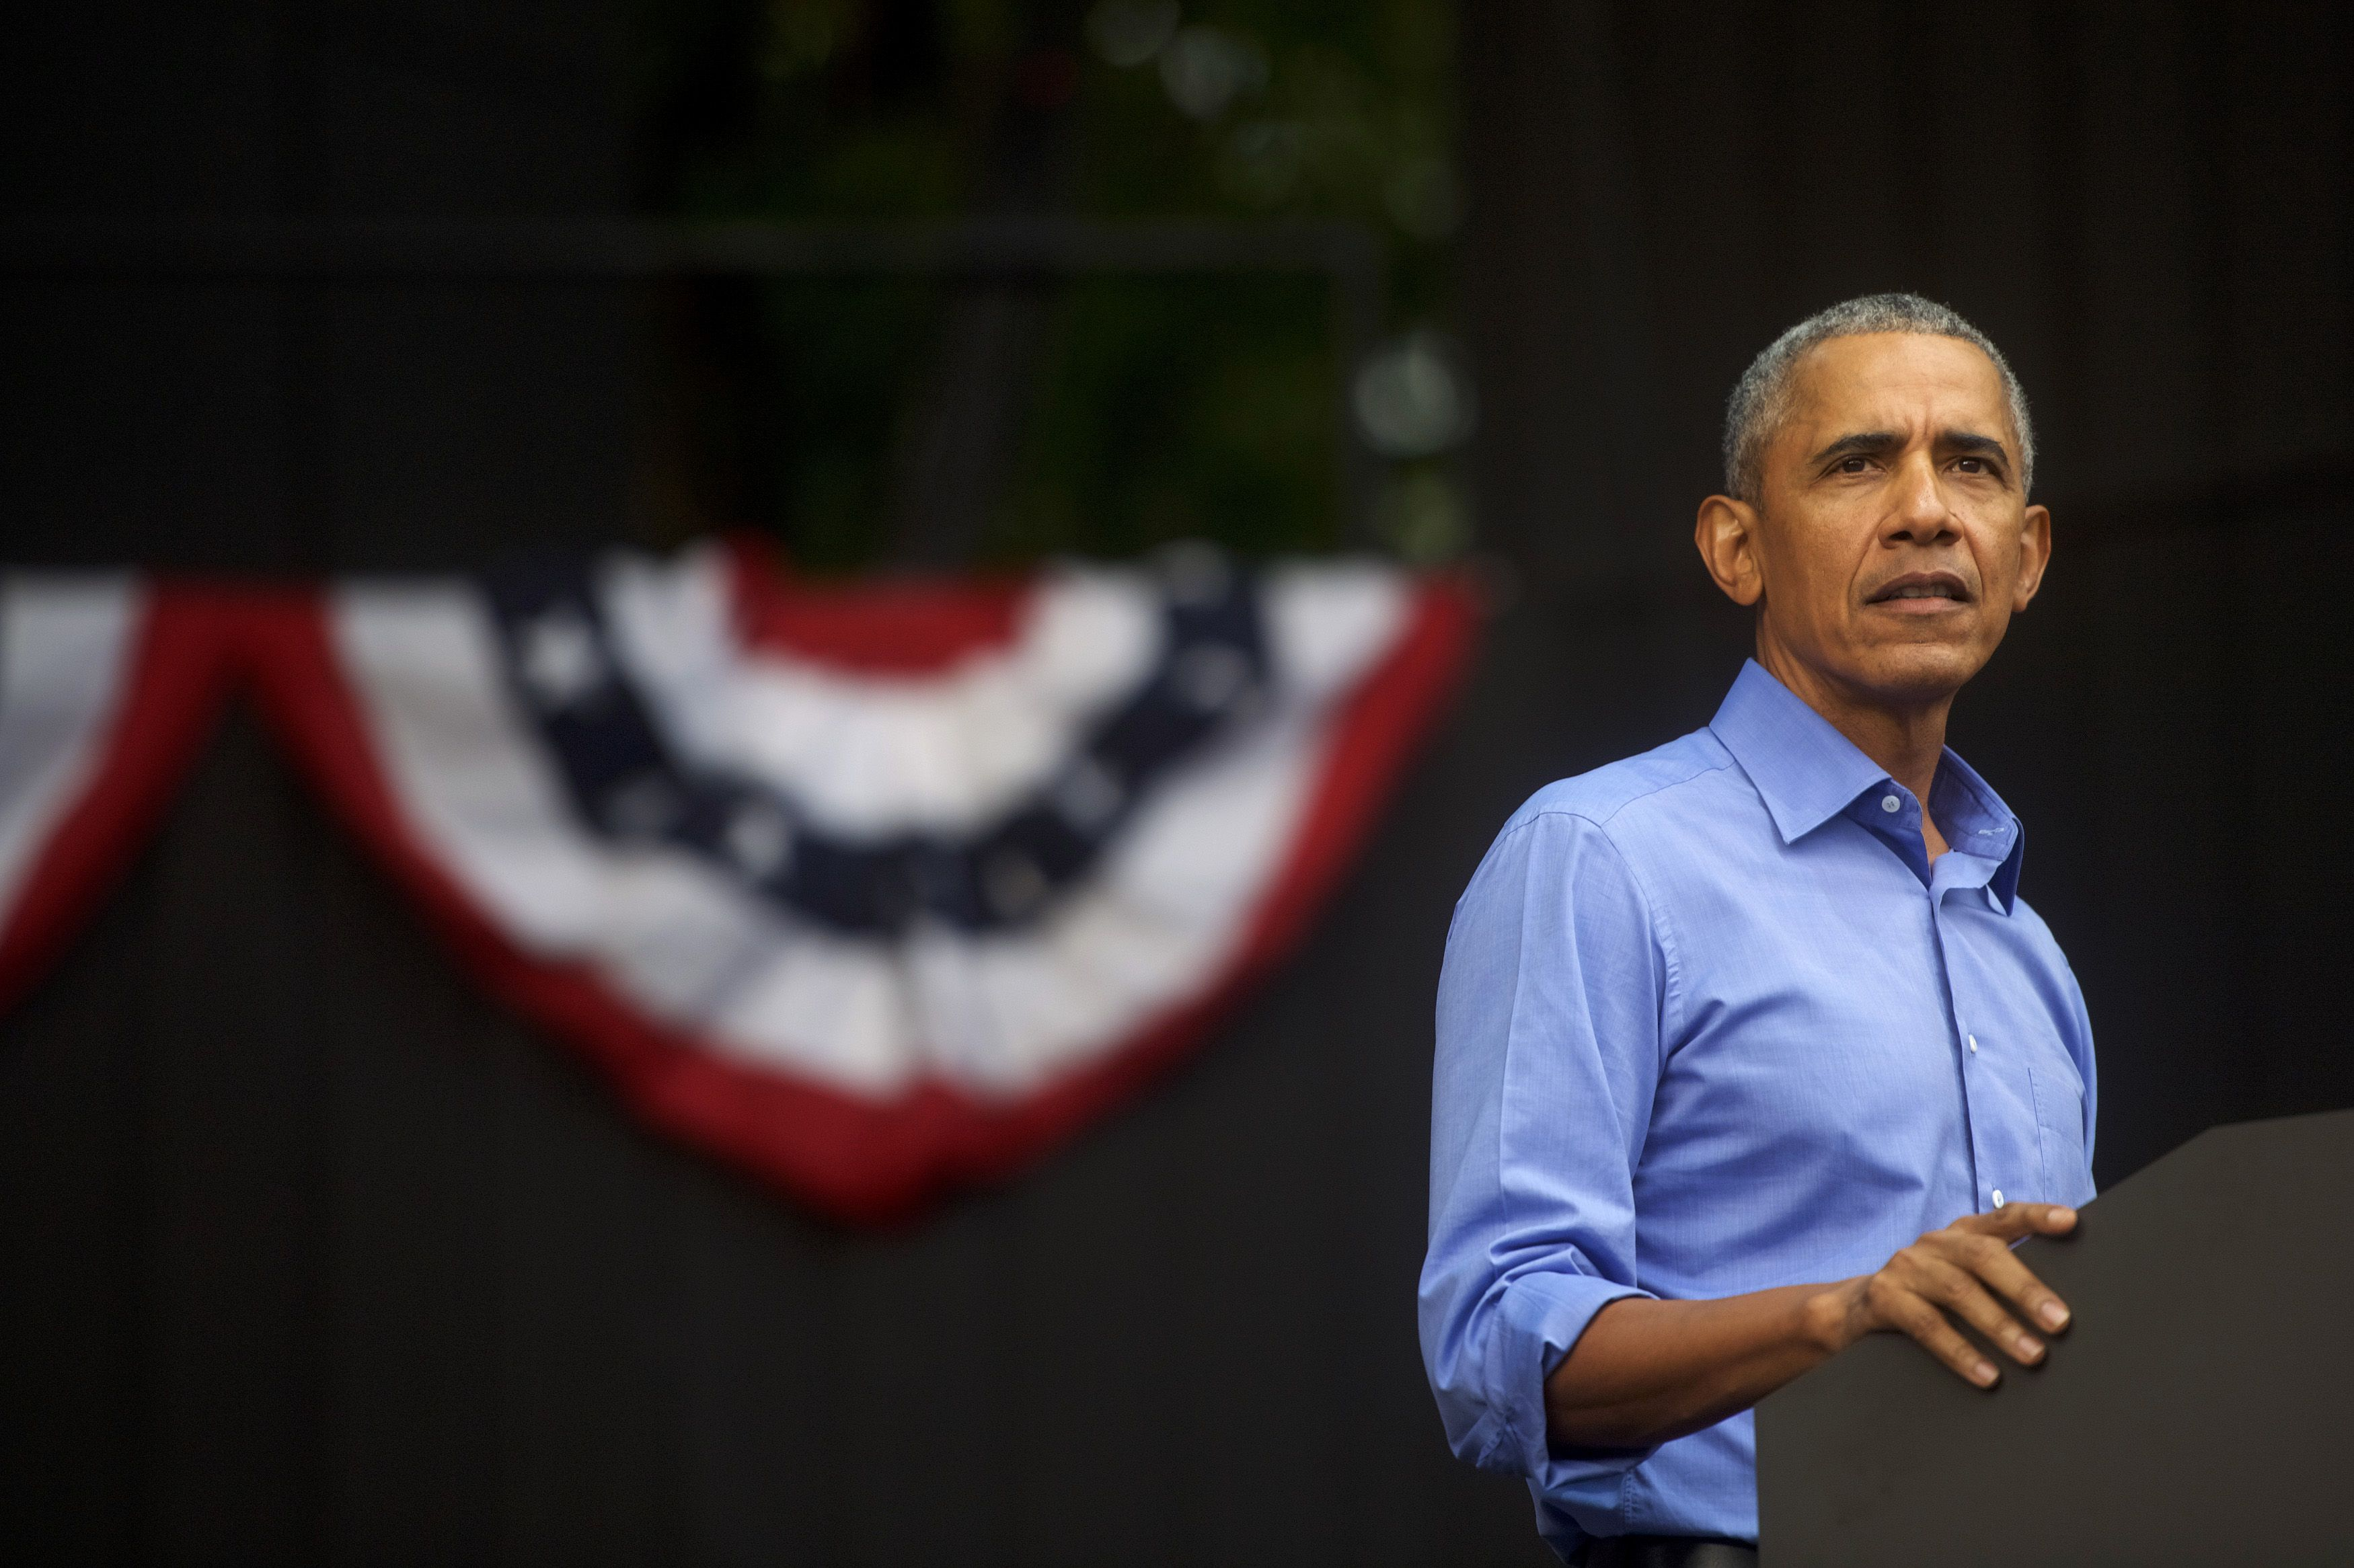 Barack Obama Responds to George Floyd's Death: 'We Can and Must be Better'